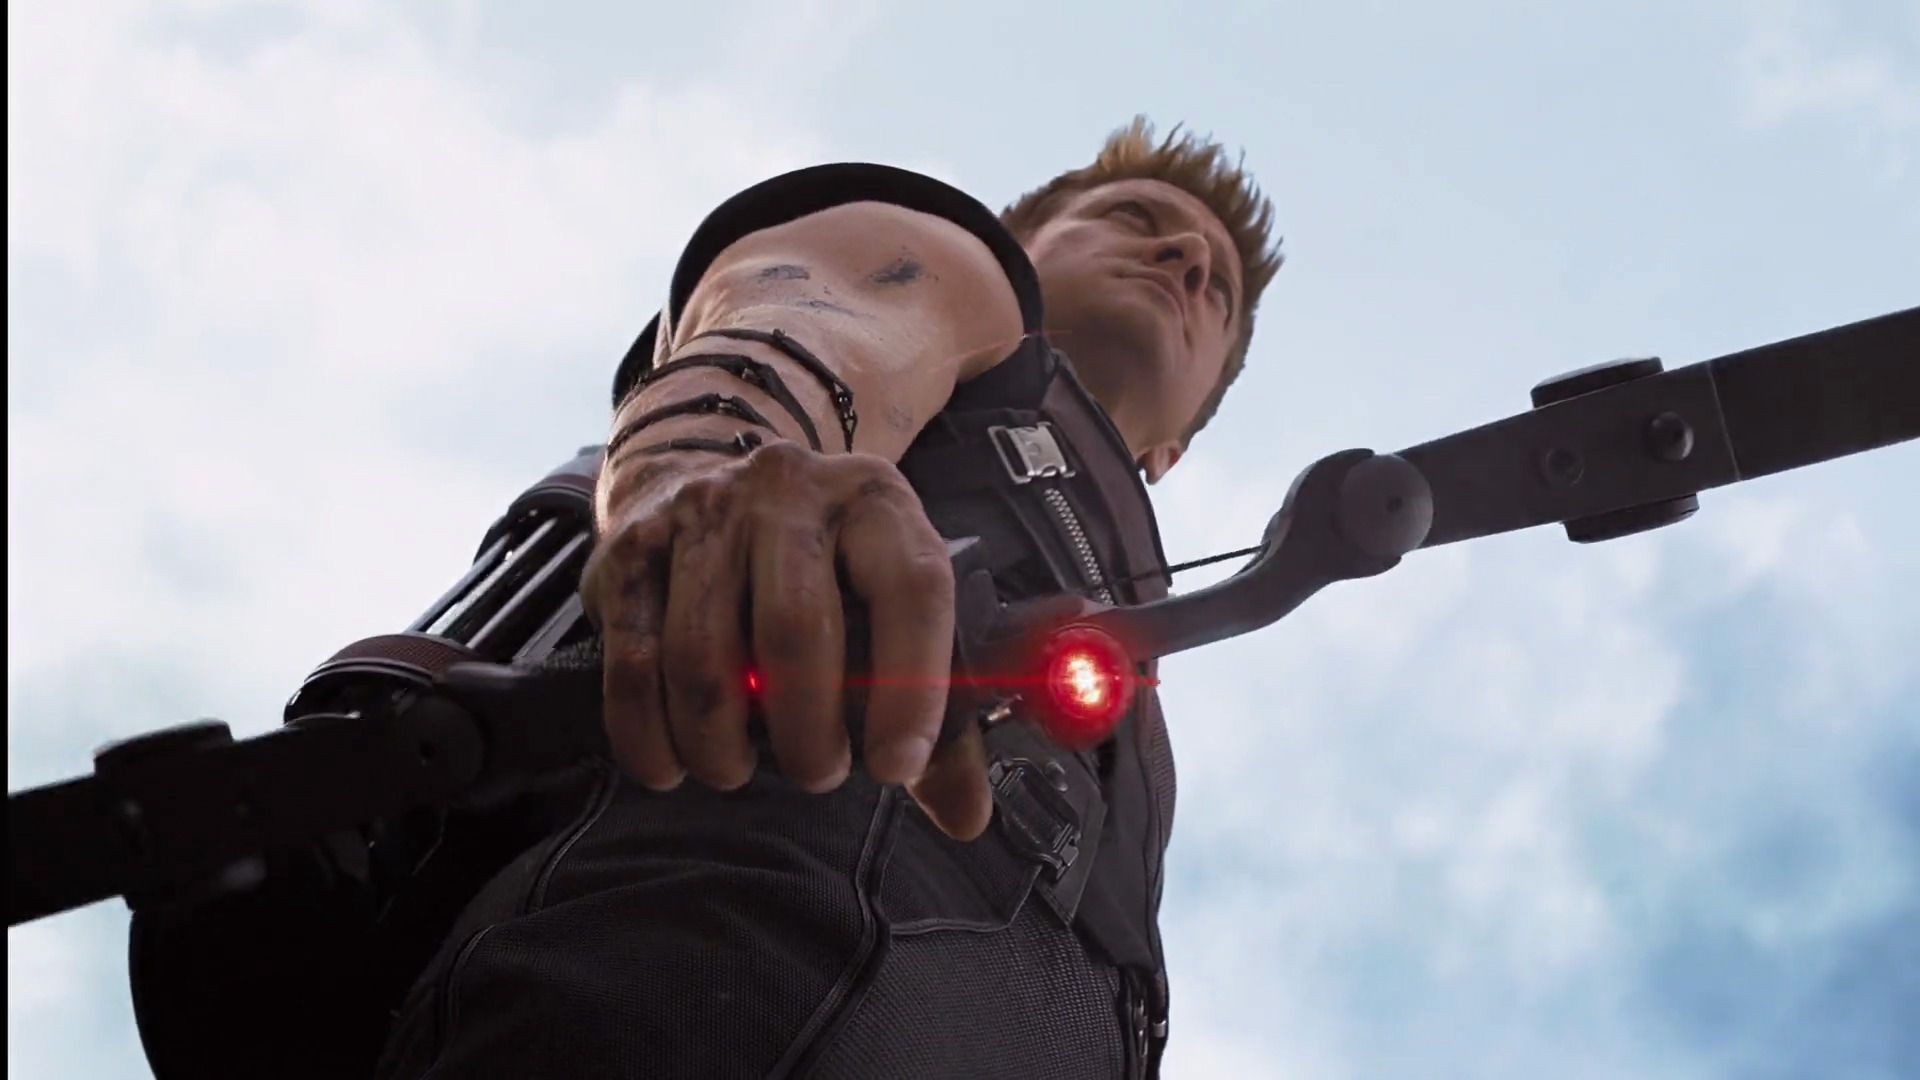 25 best hawkeye images on pinterest | hawkeye, the avengers and